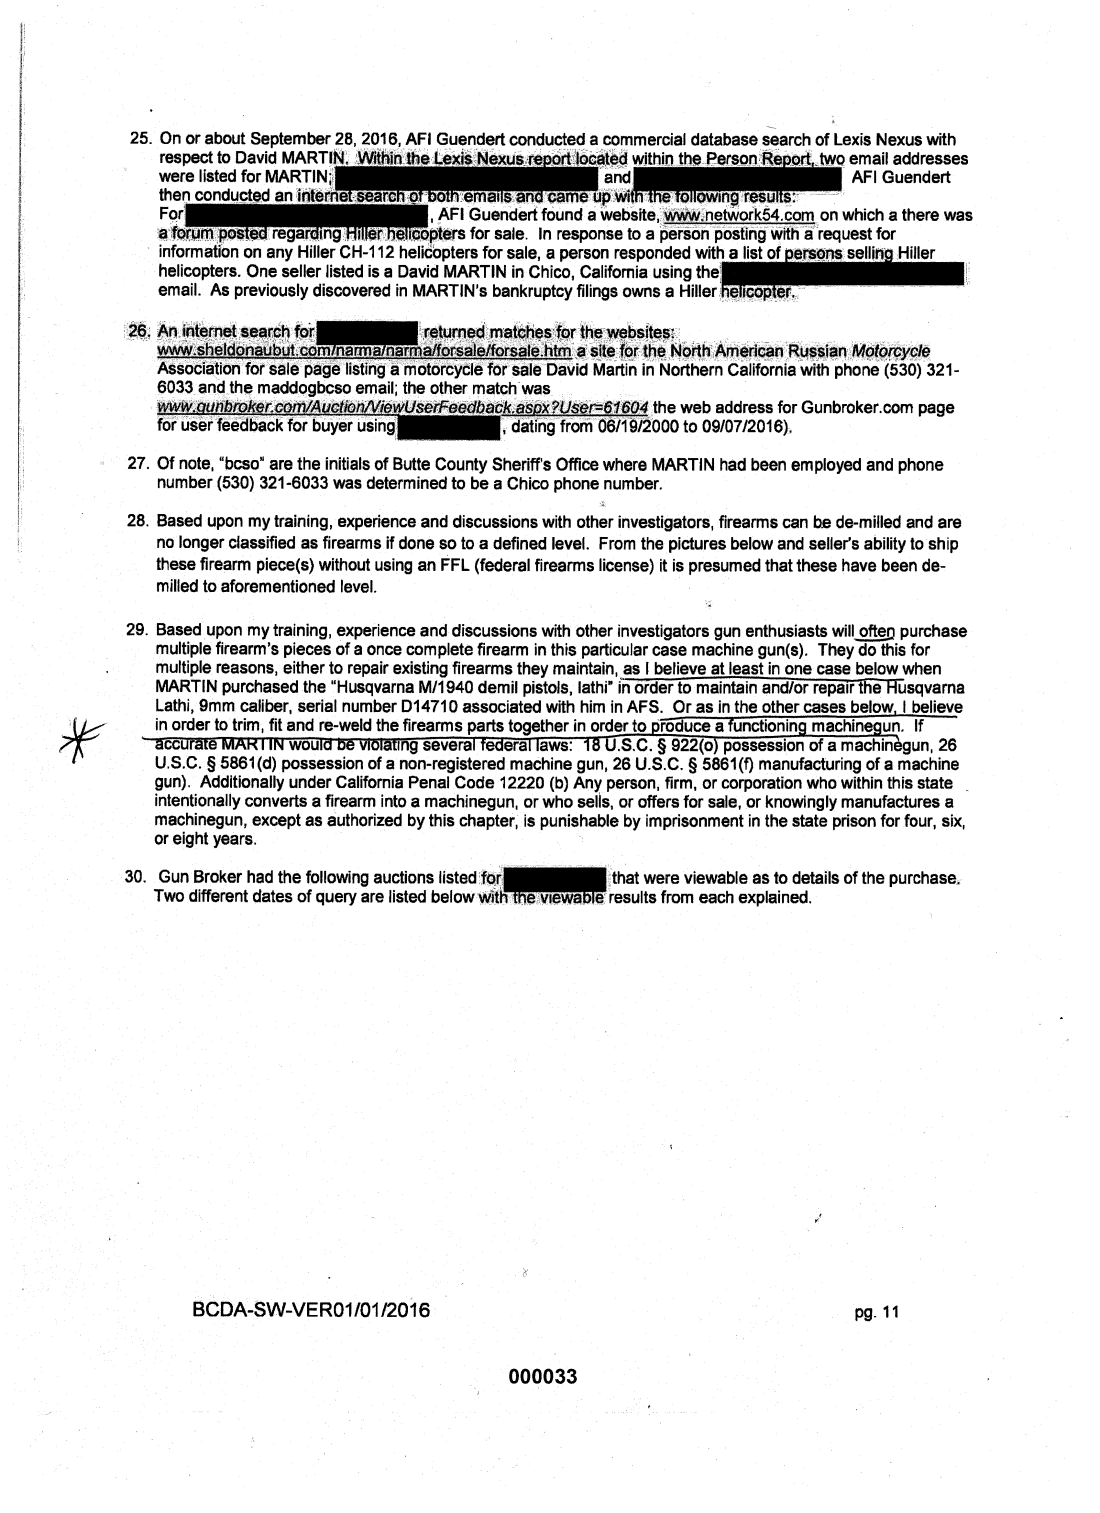 Statement of probable cause page 7